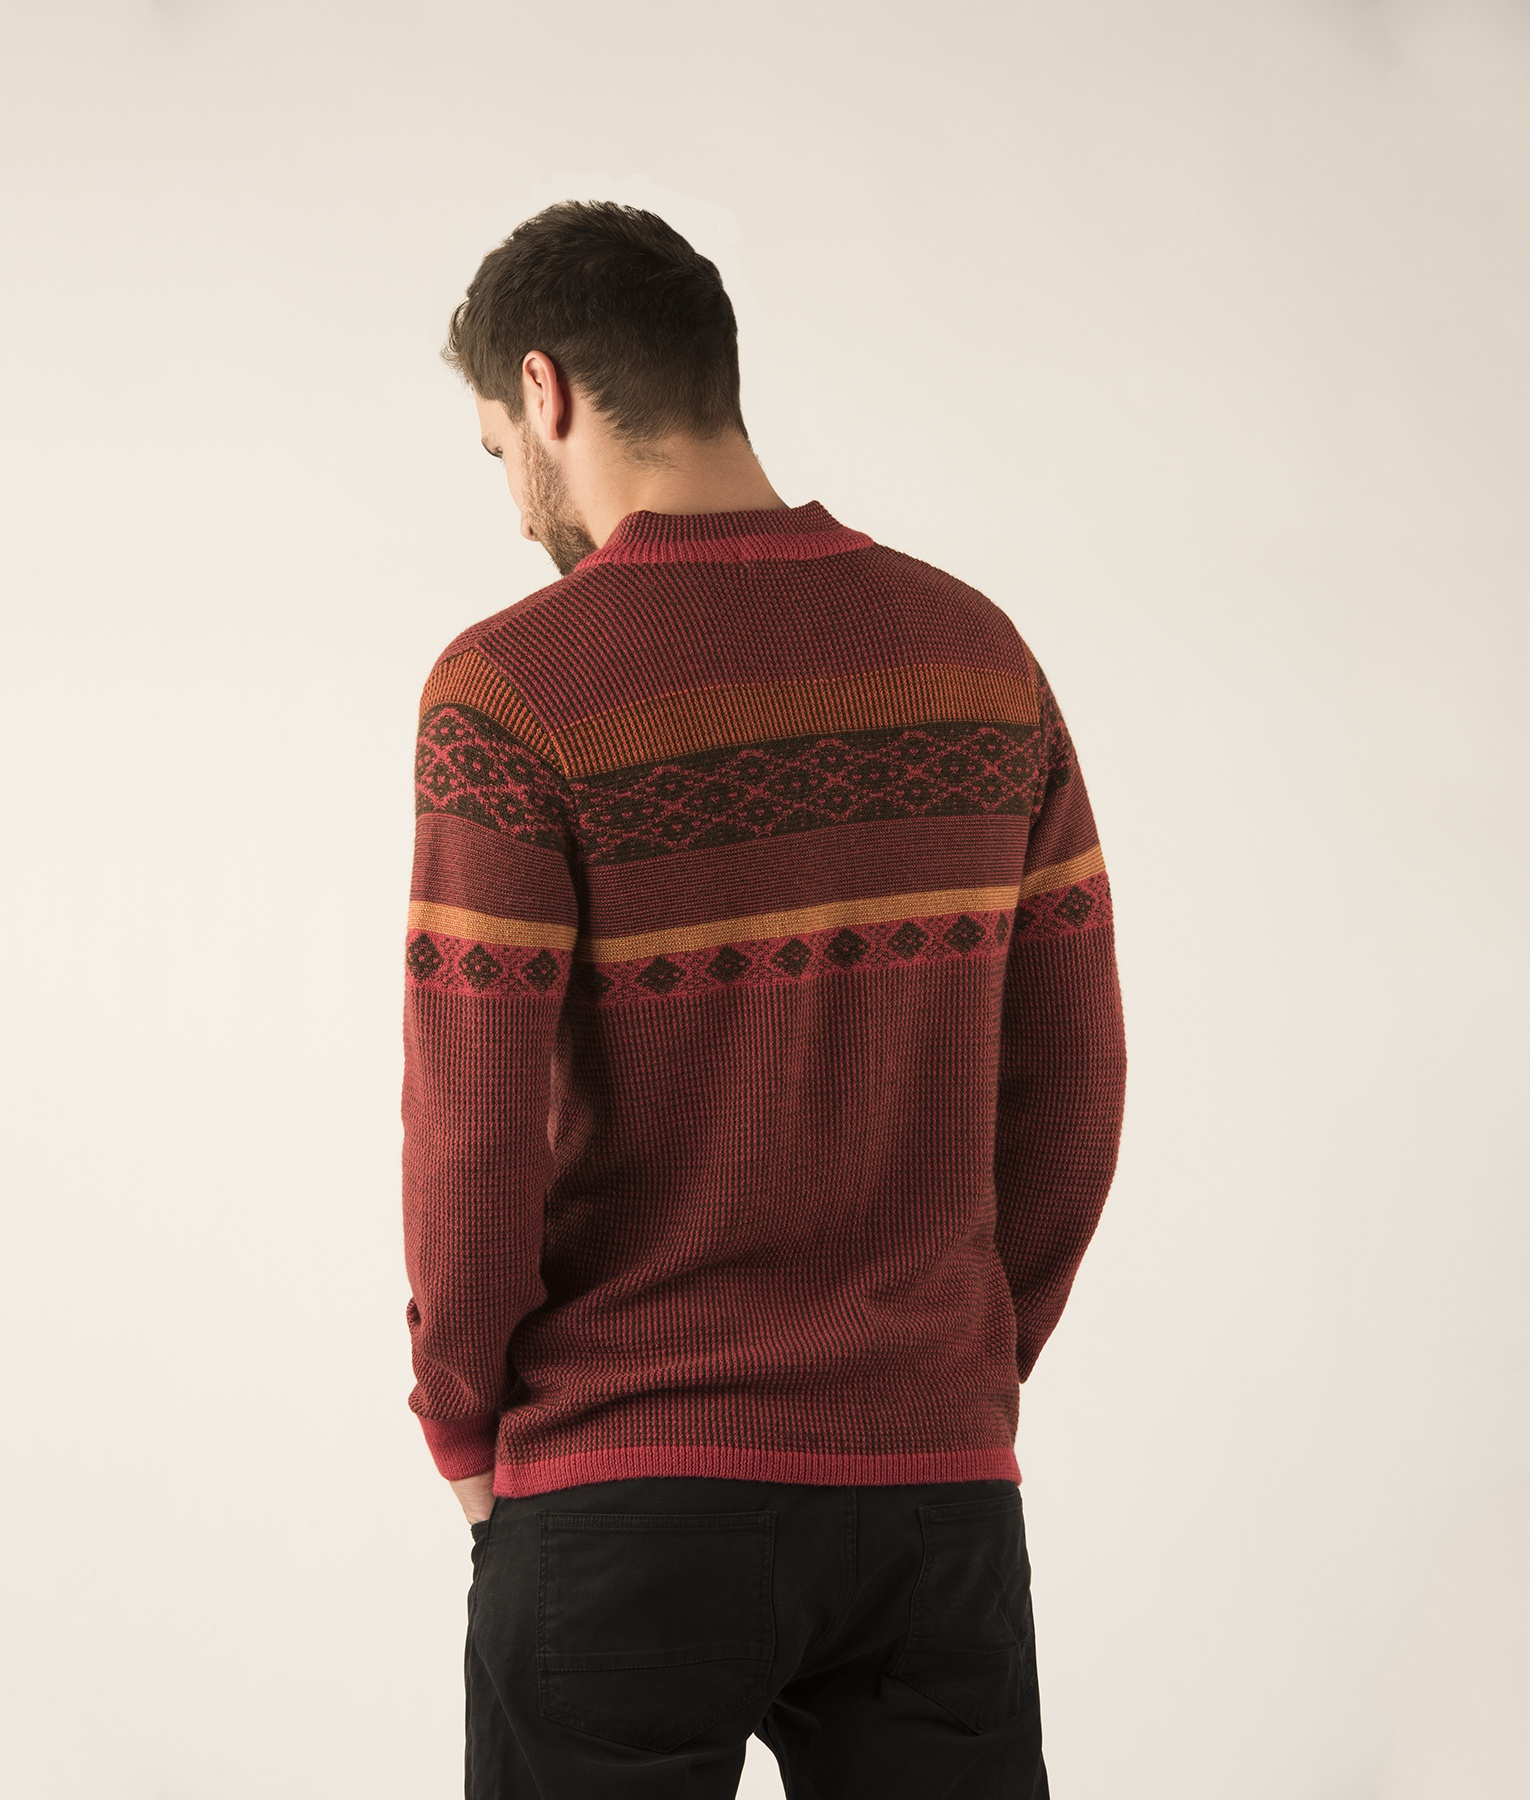 SEED STITCH MOCK NECK PULLOVER WITH ZIPPER C002